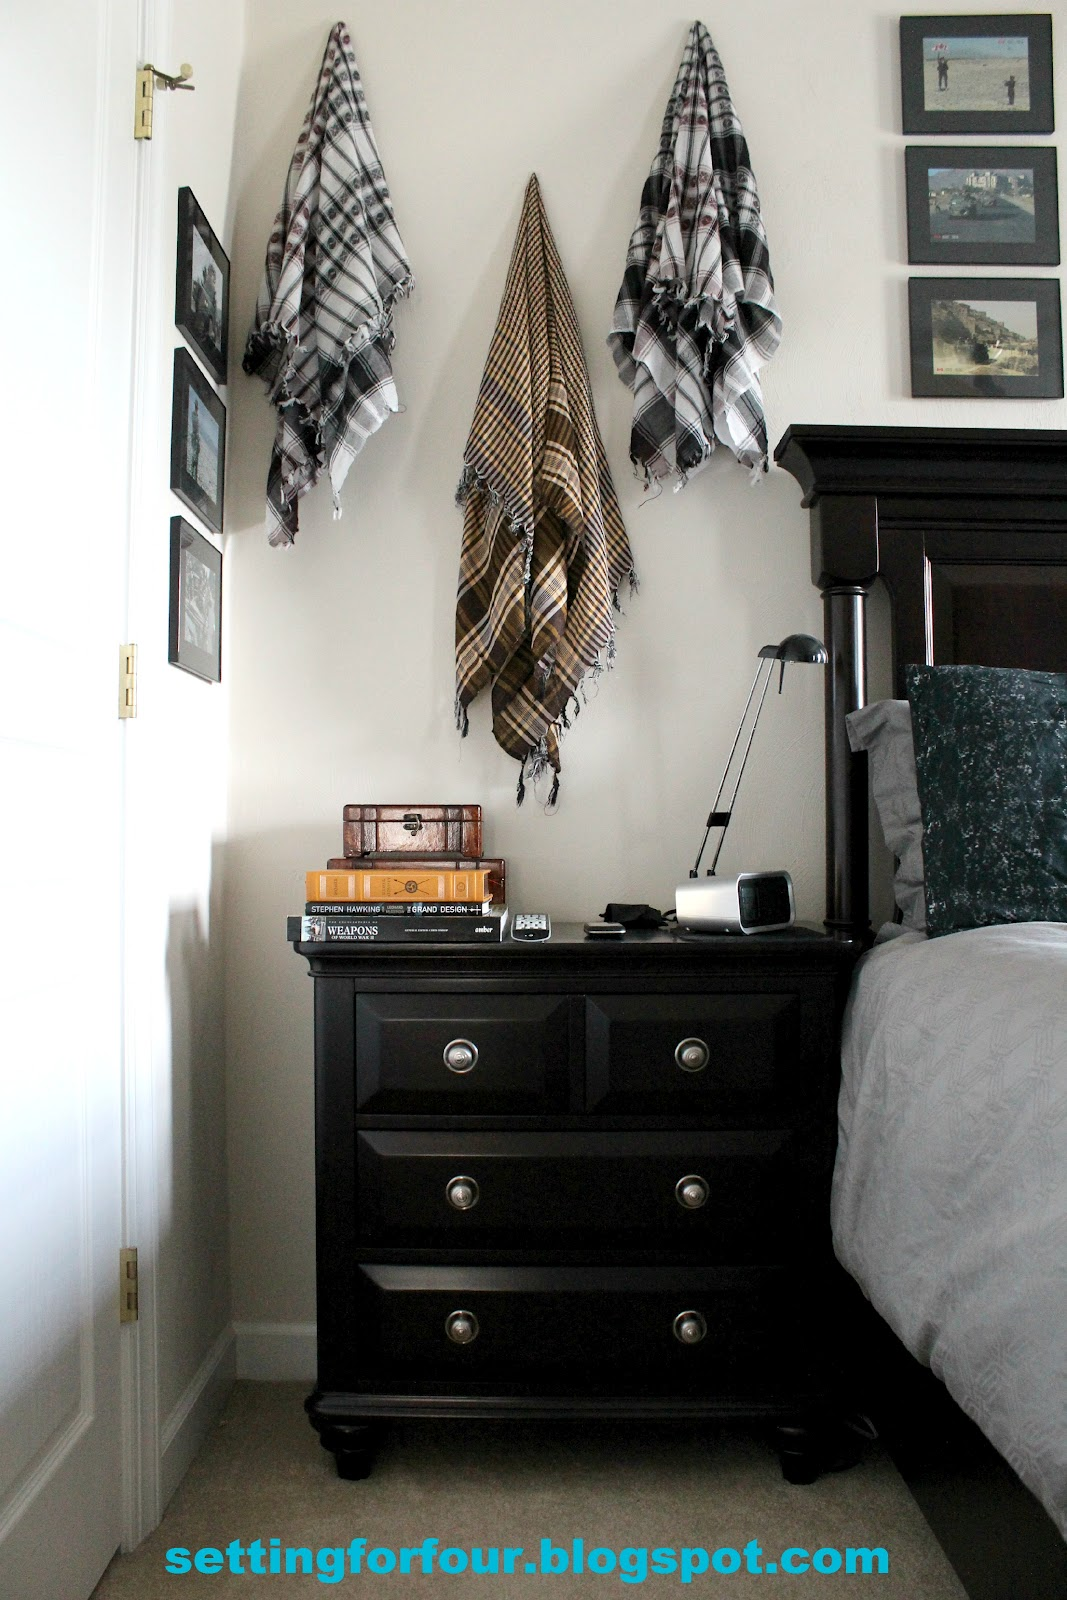 Boy Bedroom Storage: Teenage Boy's Bedroom